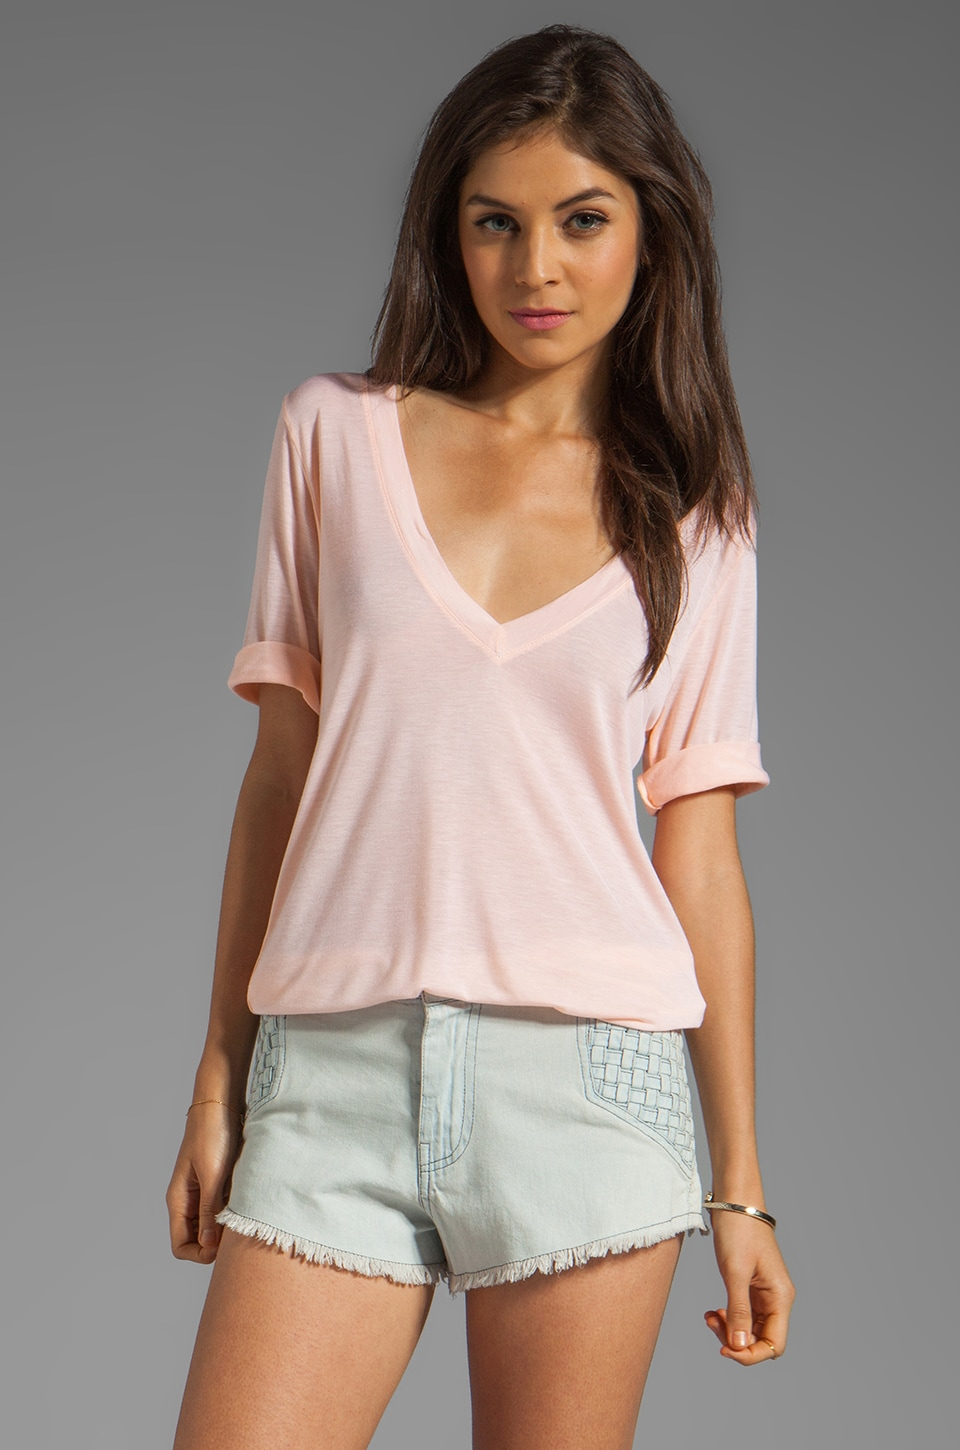 Feel the Piece Best Friend V-Neck Tee in Peach